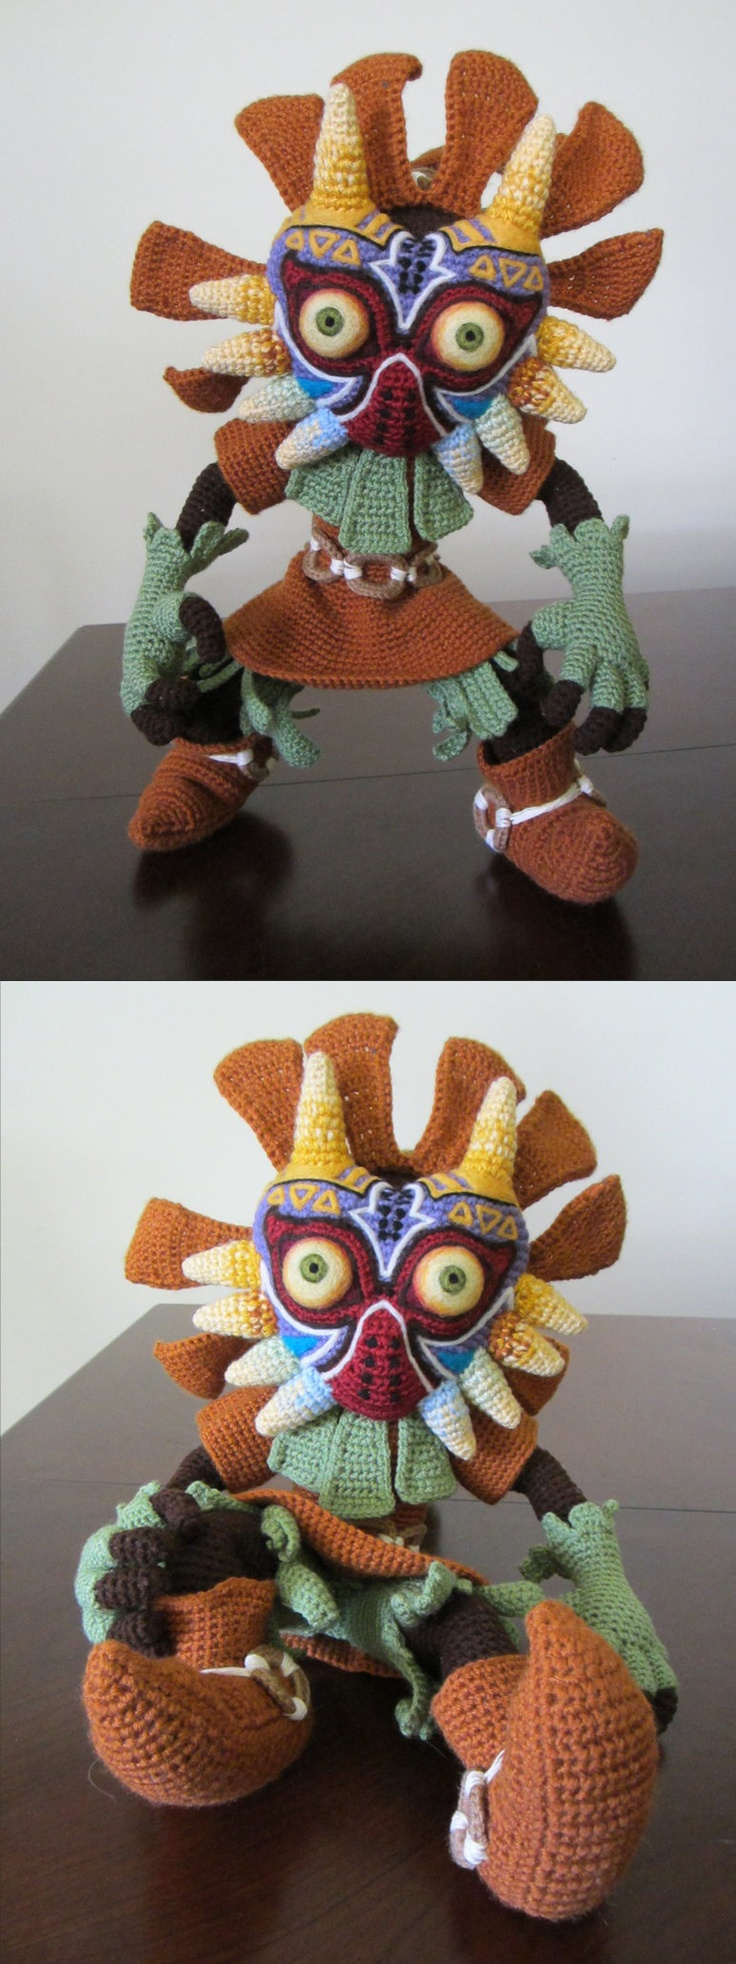 Skull Kid crocheting.   I wonder if I could convince my mom to make this for me.